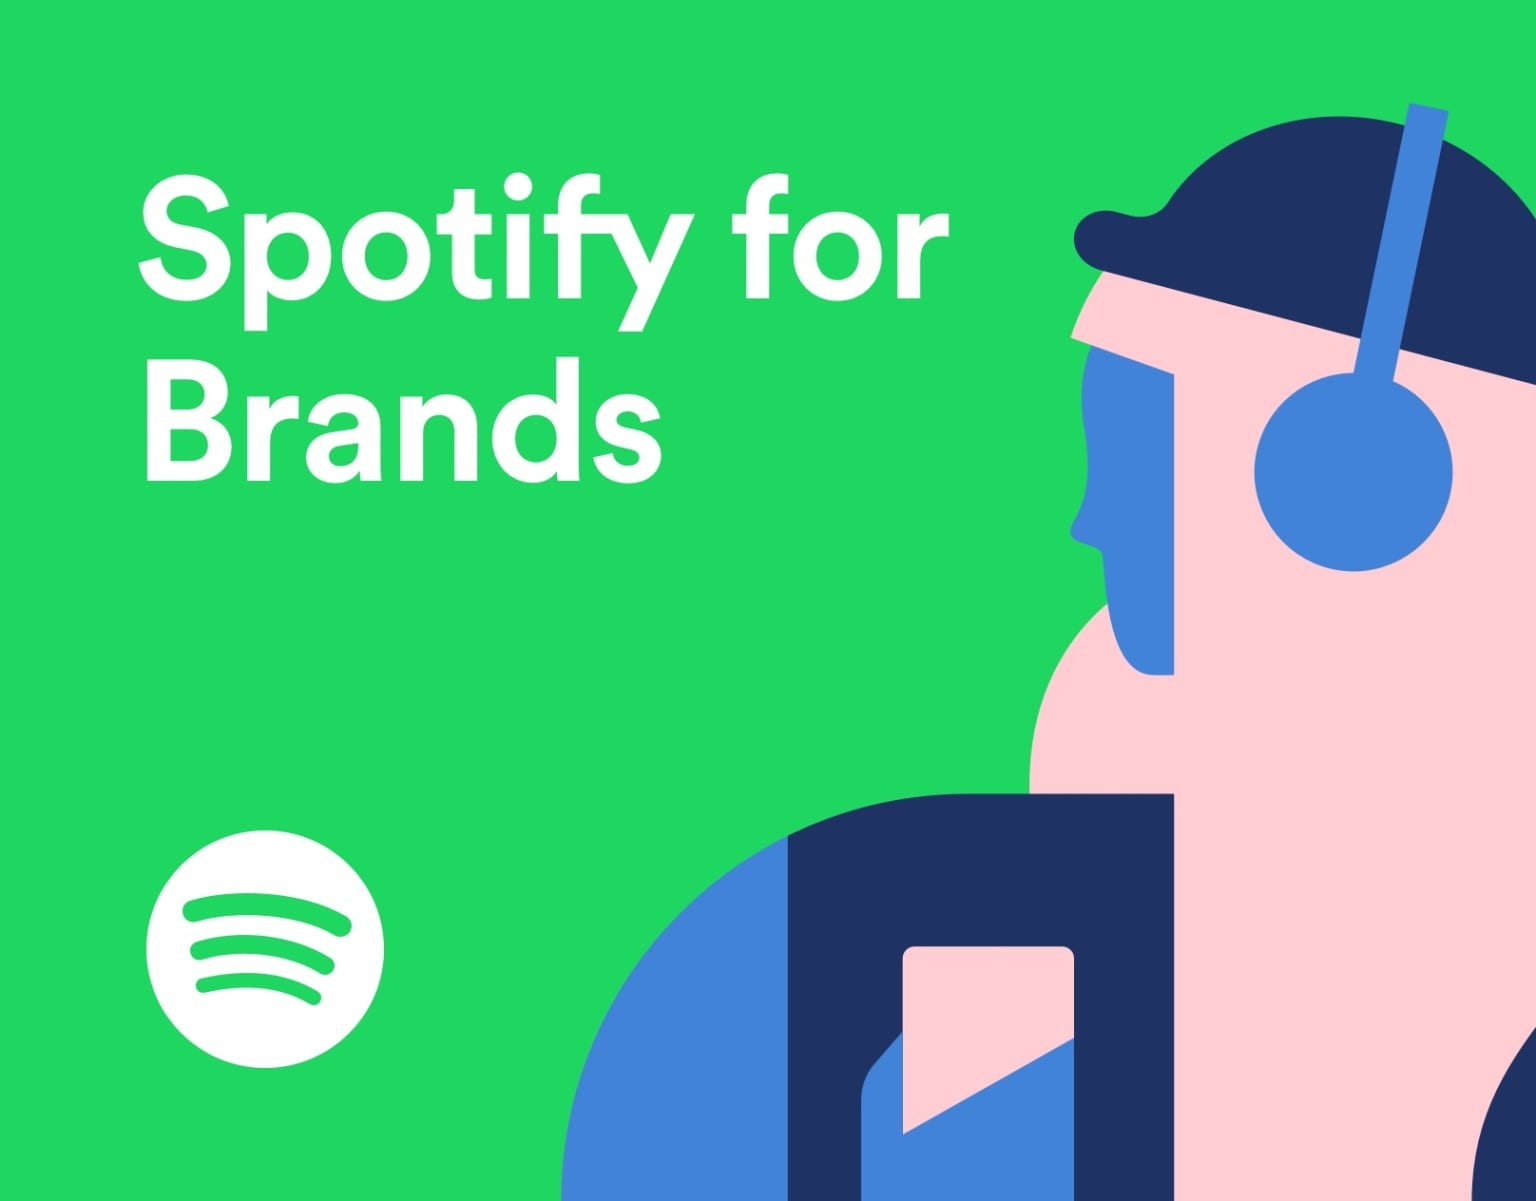 Spotify for Brands: a new home for Spotify's advertising products